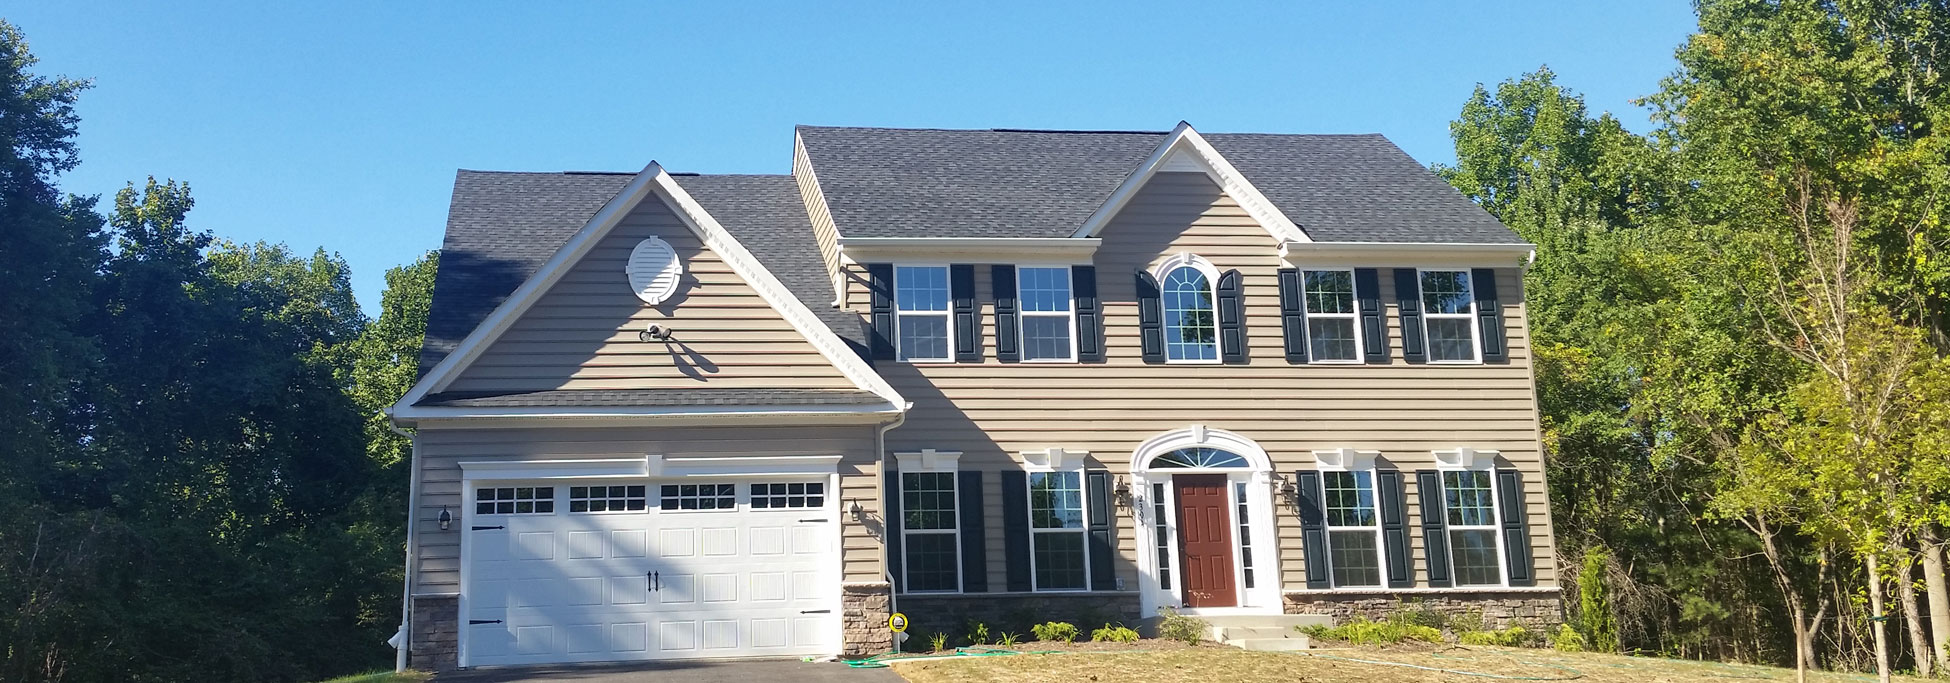 7 Popular Siding Materials To Consider: The Different Types Of Vinyl Siding